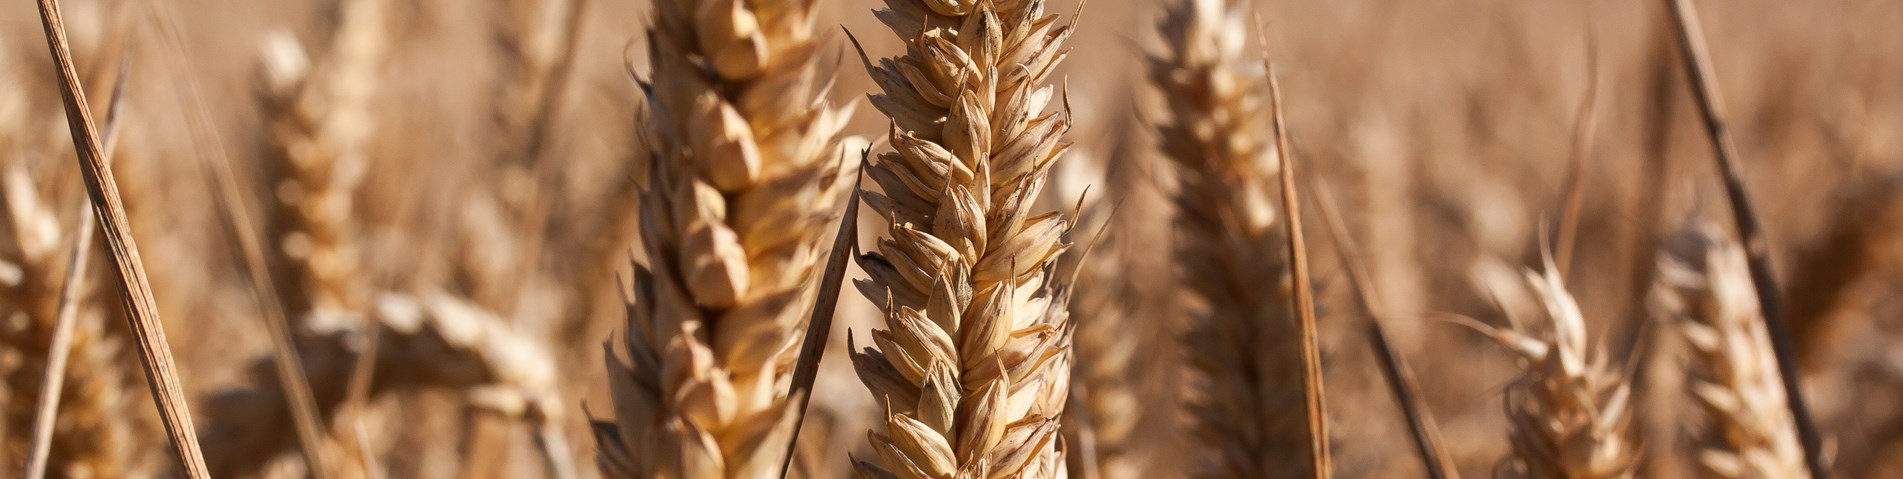 ear-cereals-infructescence-staple-food-162769.jpeg